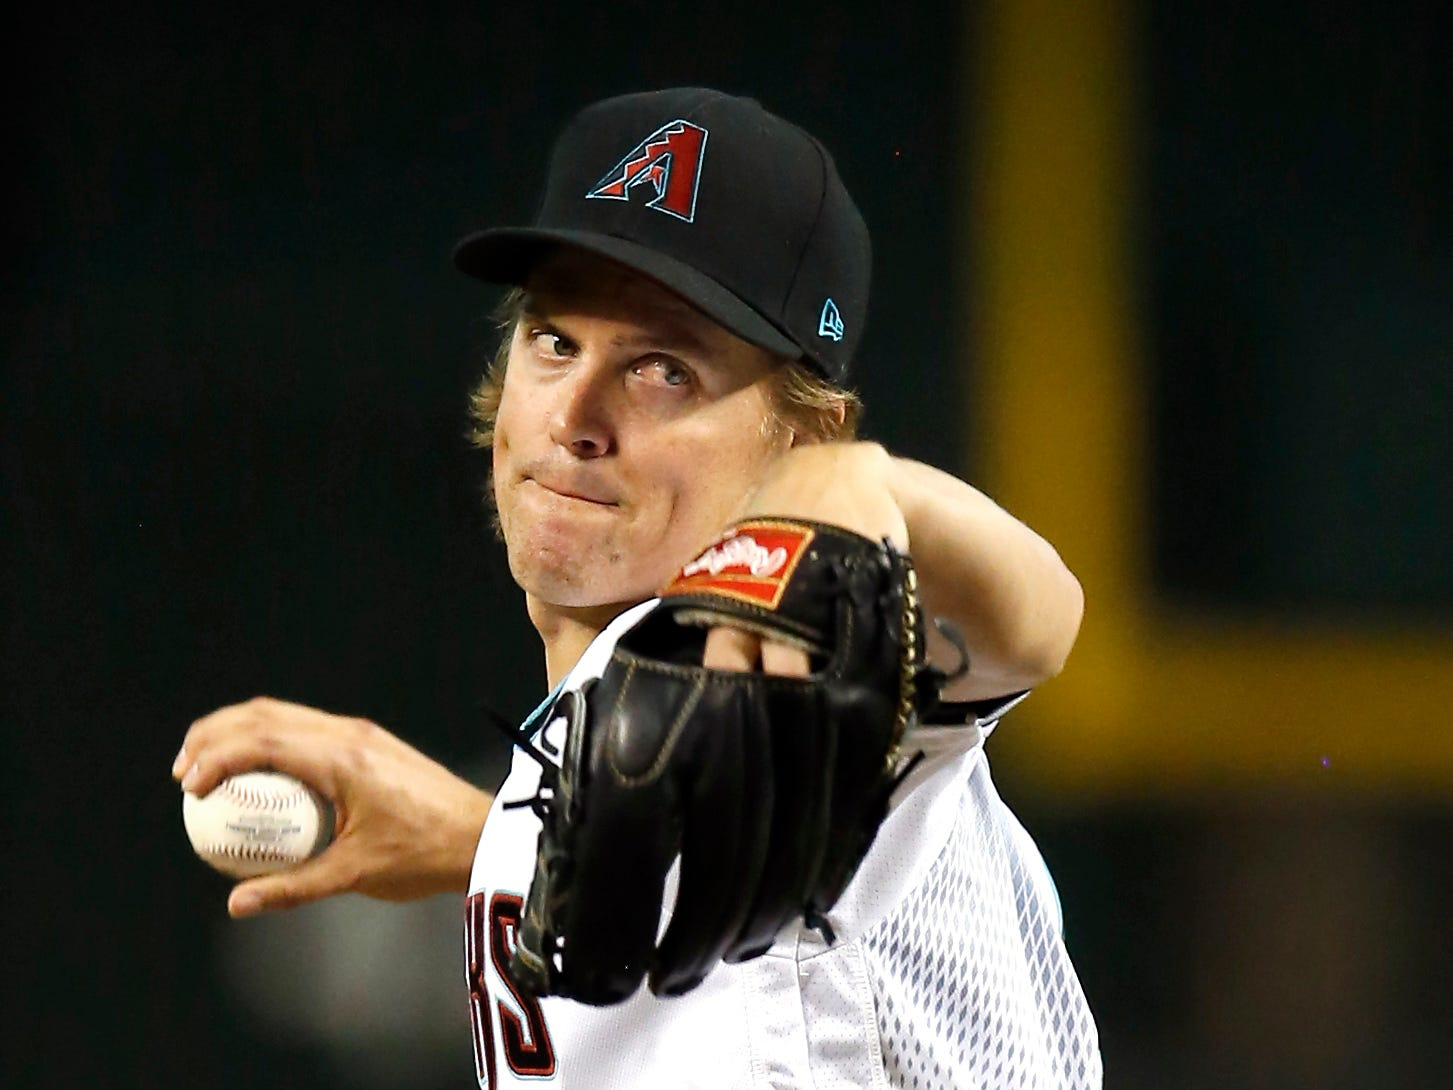 Arizona Diamondbacks pitcher Zack Greinke winds up during the first inning of the team's baseball game against the Philadelphia Phillies, Tuesday, Aug. 7, 2018, in Phoenix.